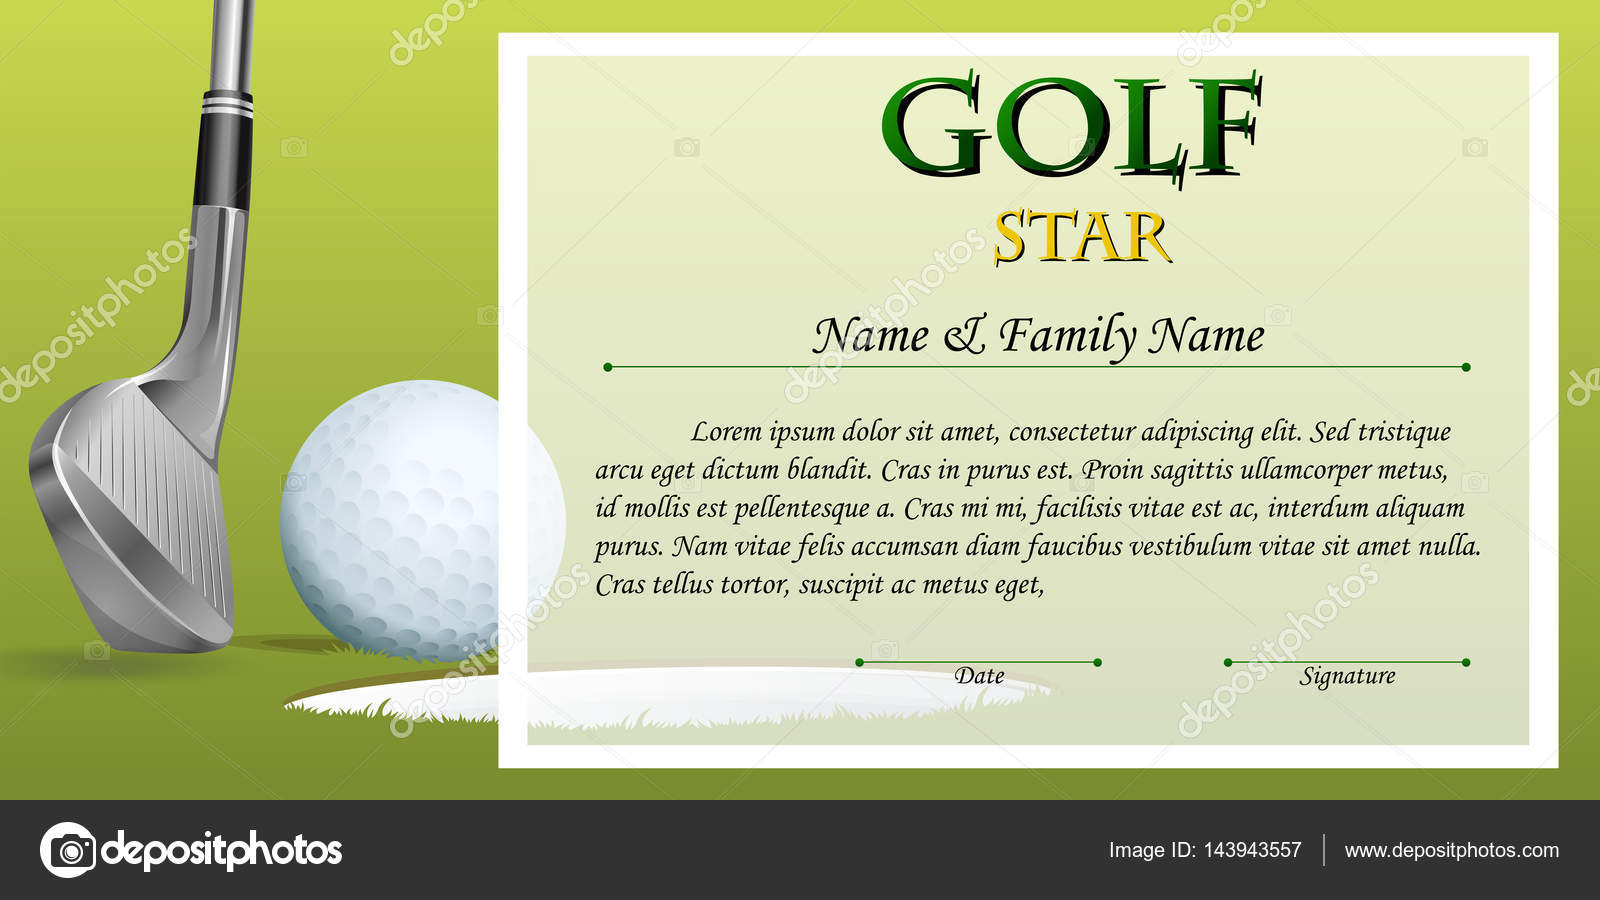 Certificate template for golf star with green background stock certificate template for golf star with green background illustration vector by interactimages yelopaper Choice Image